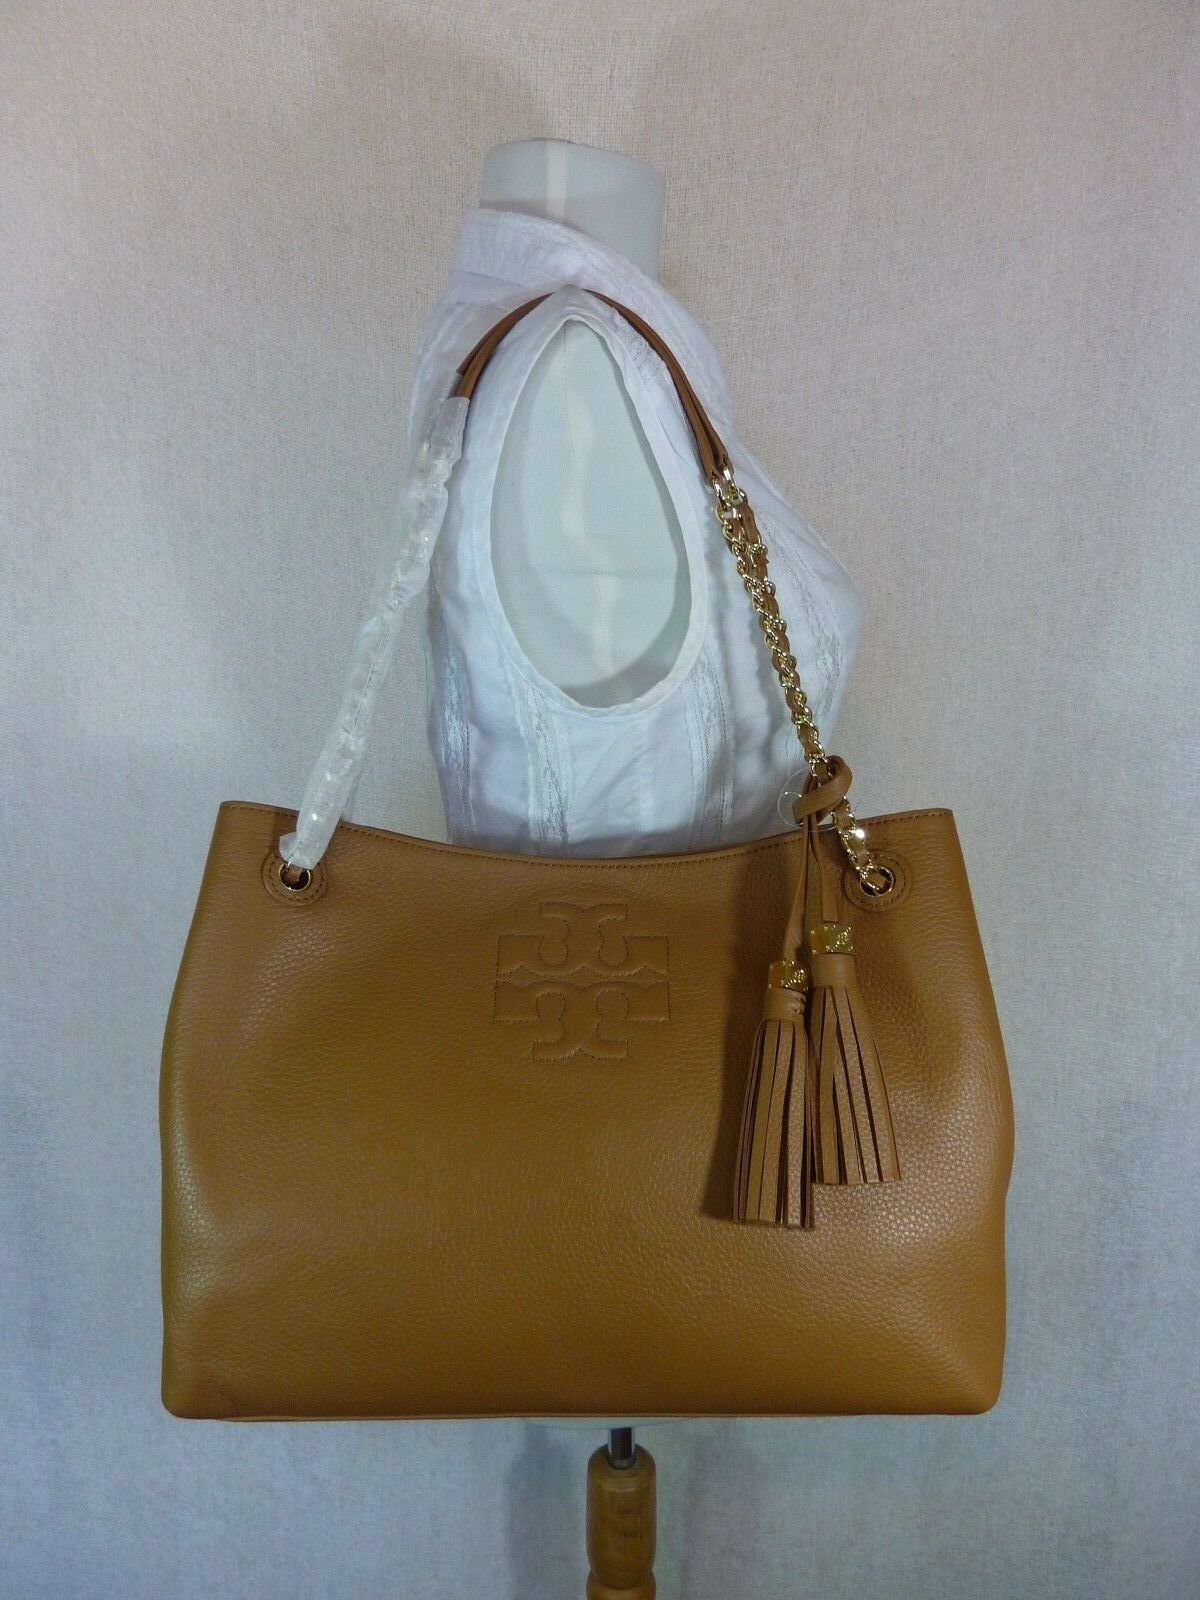 NWT Tory Burch Bark Brown Pebbled Leather Thea Chain Slouchy Tote $495